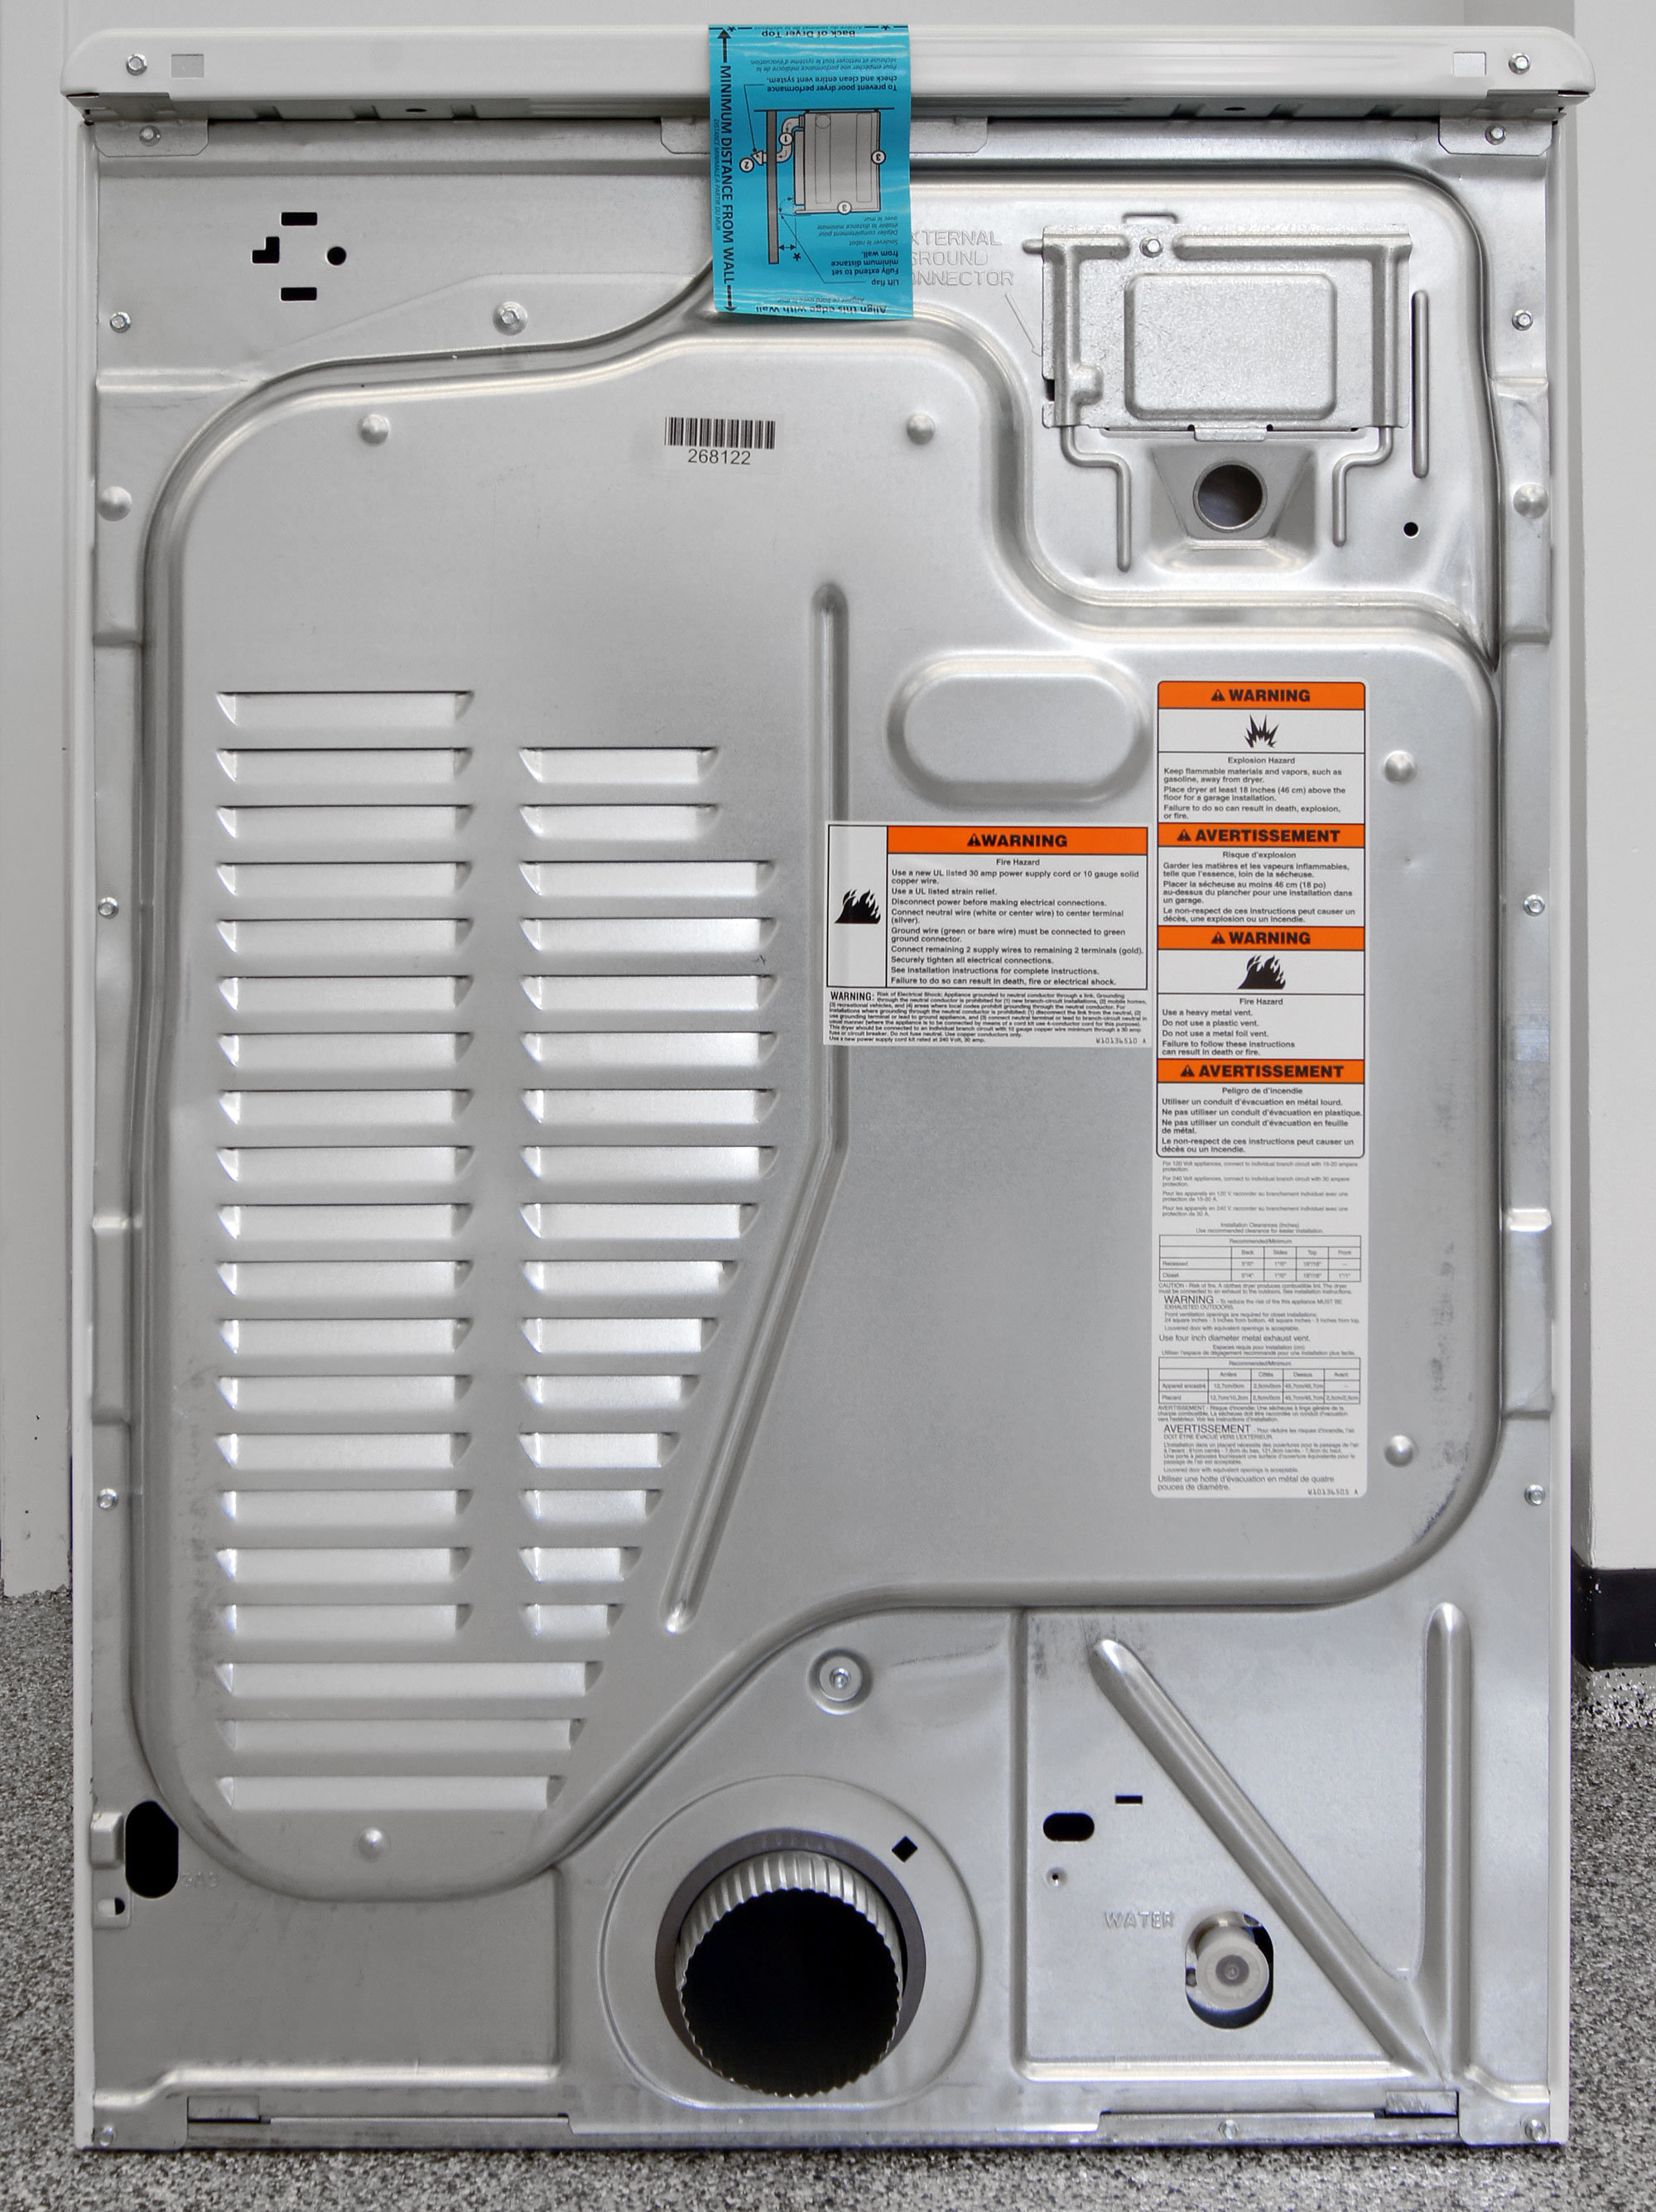 While the use of steam is limited, the Maytag Maxima MED5100DW still comes with a water input down by the vent.